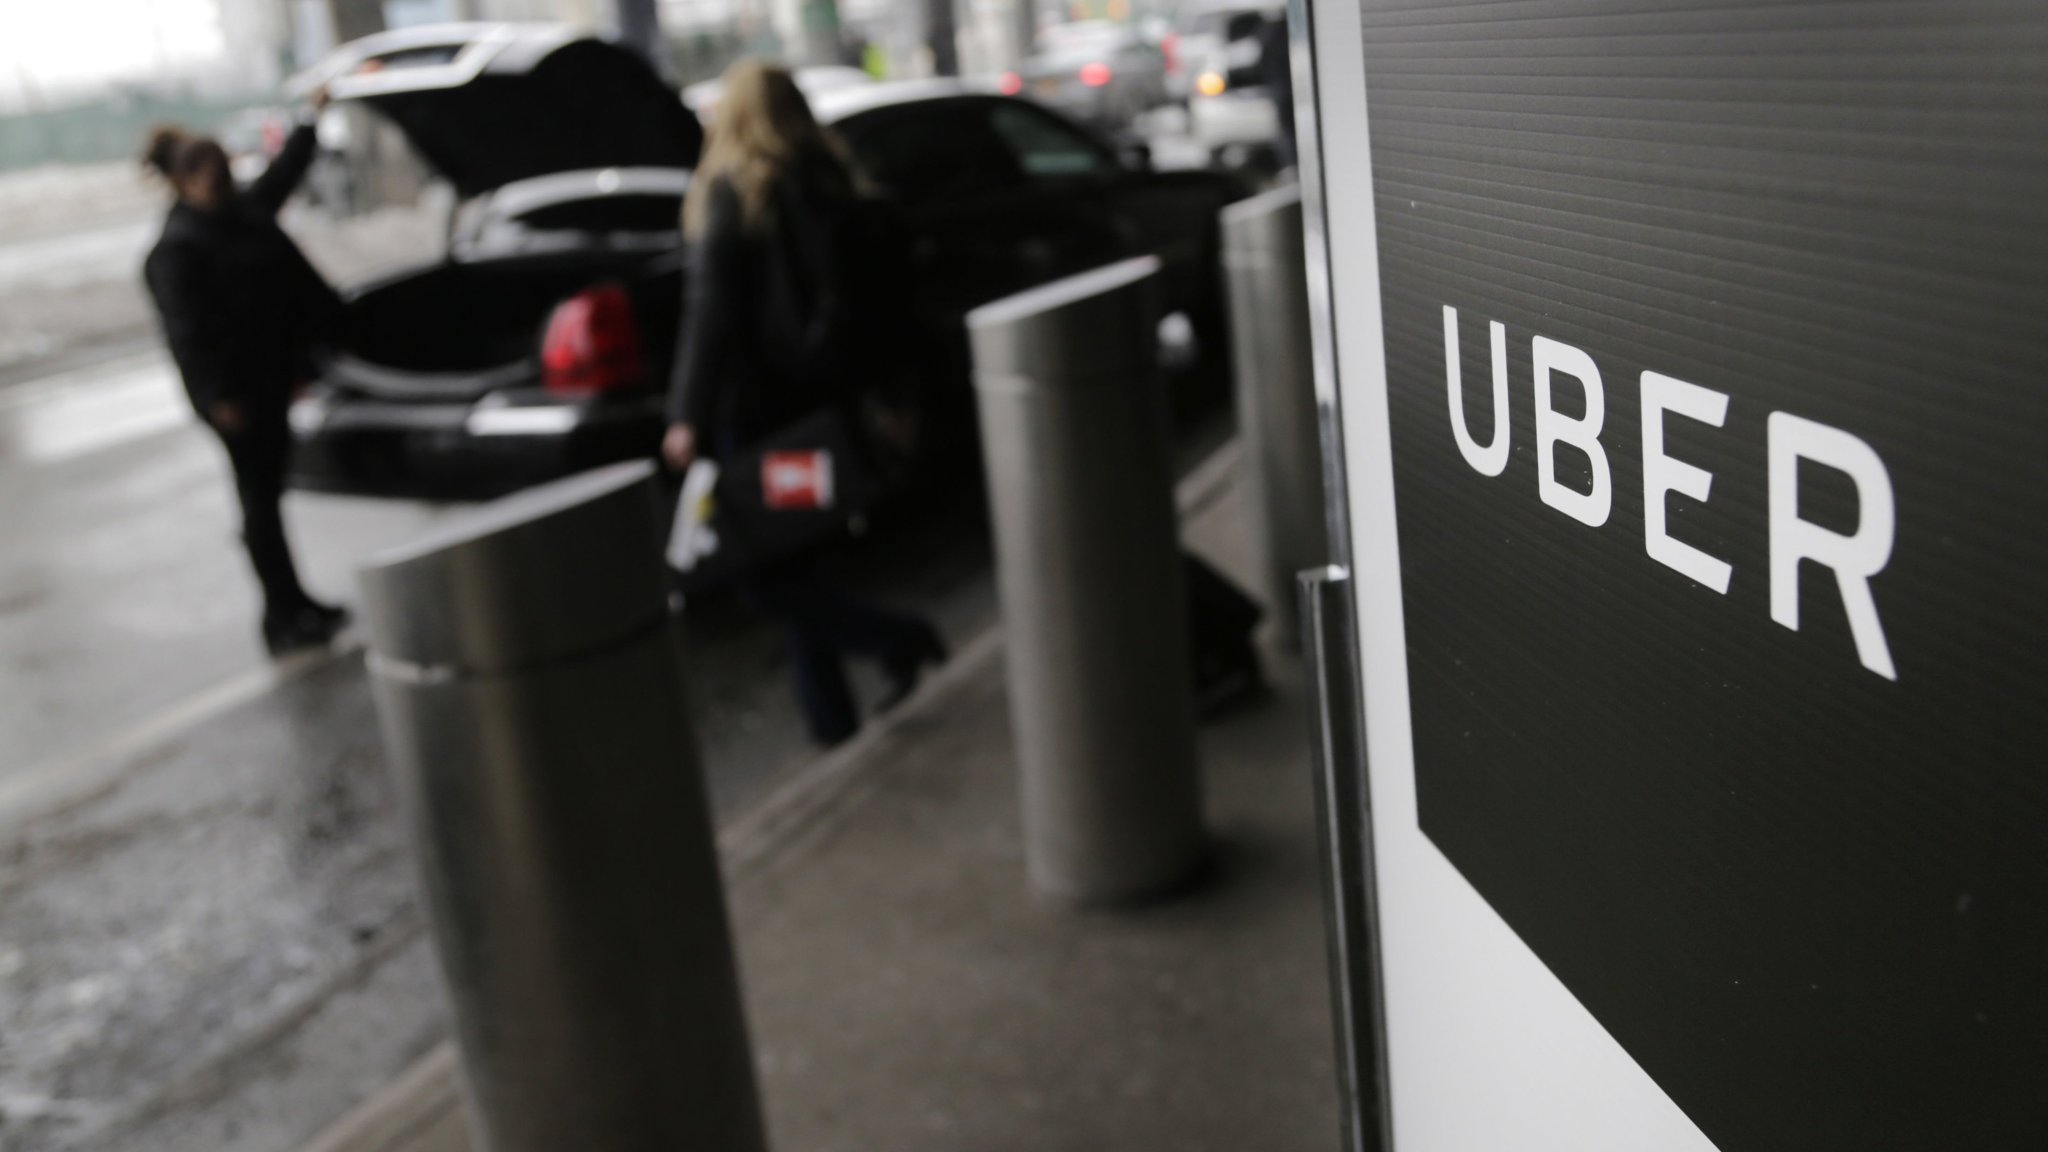 Uber's new legal chief warns staff not to spy on rivals